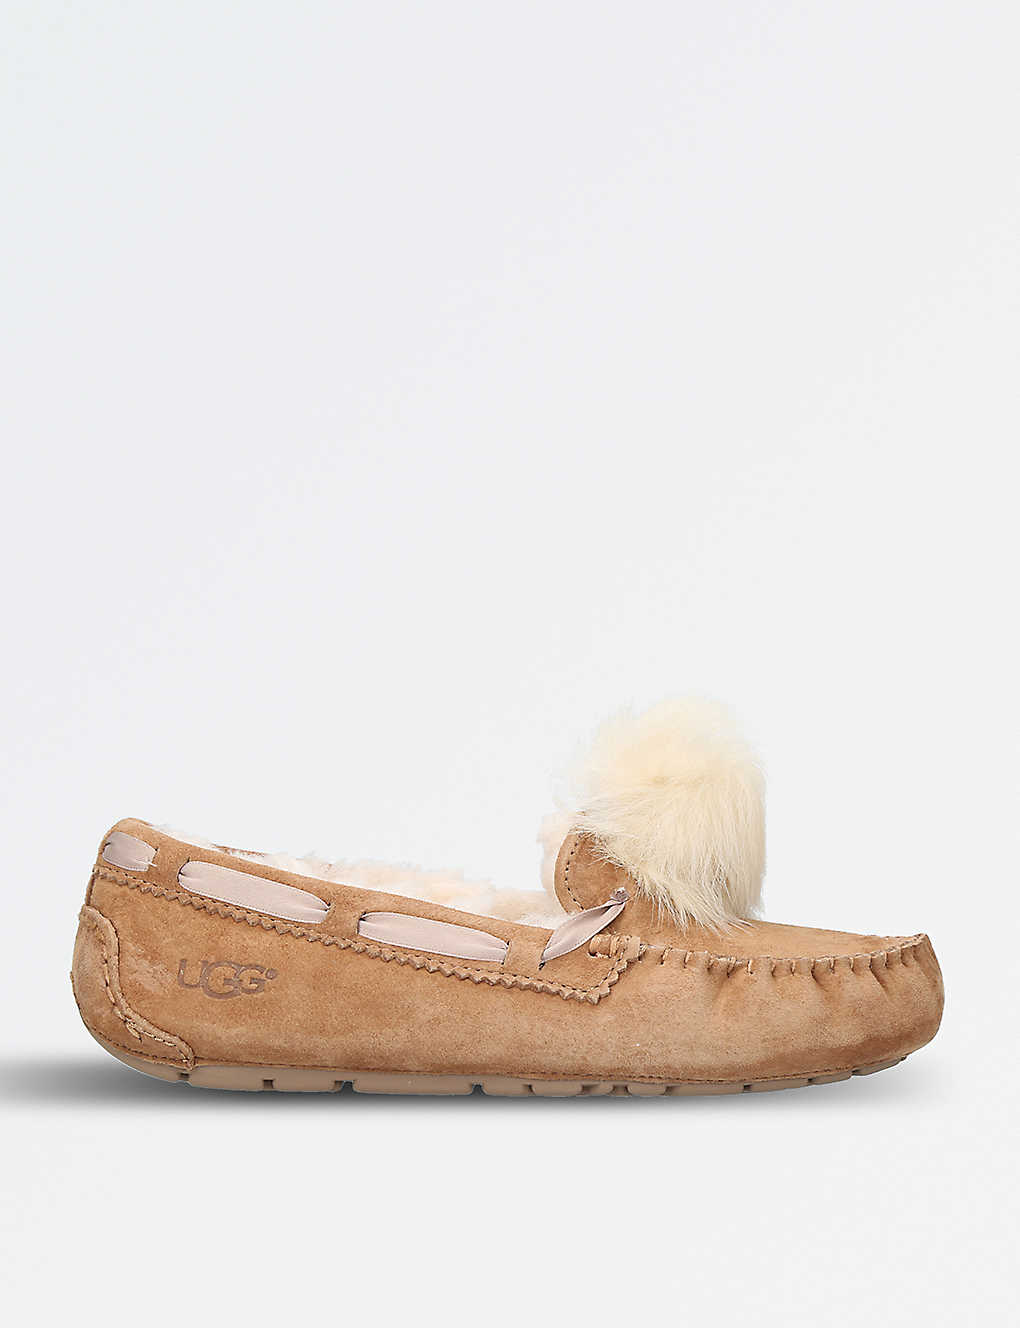 85304b9678f17 UGG - Dakota wool-lined suede pom pom slippers | Selfridges.com